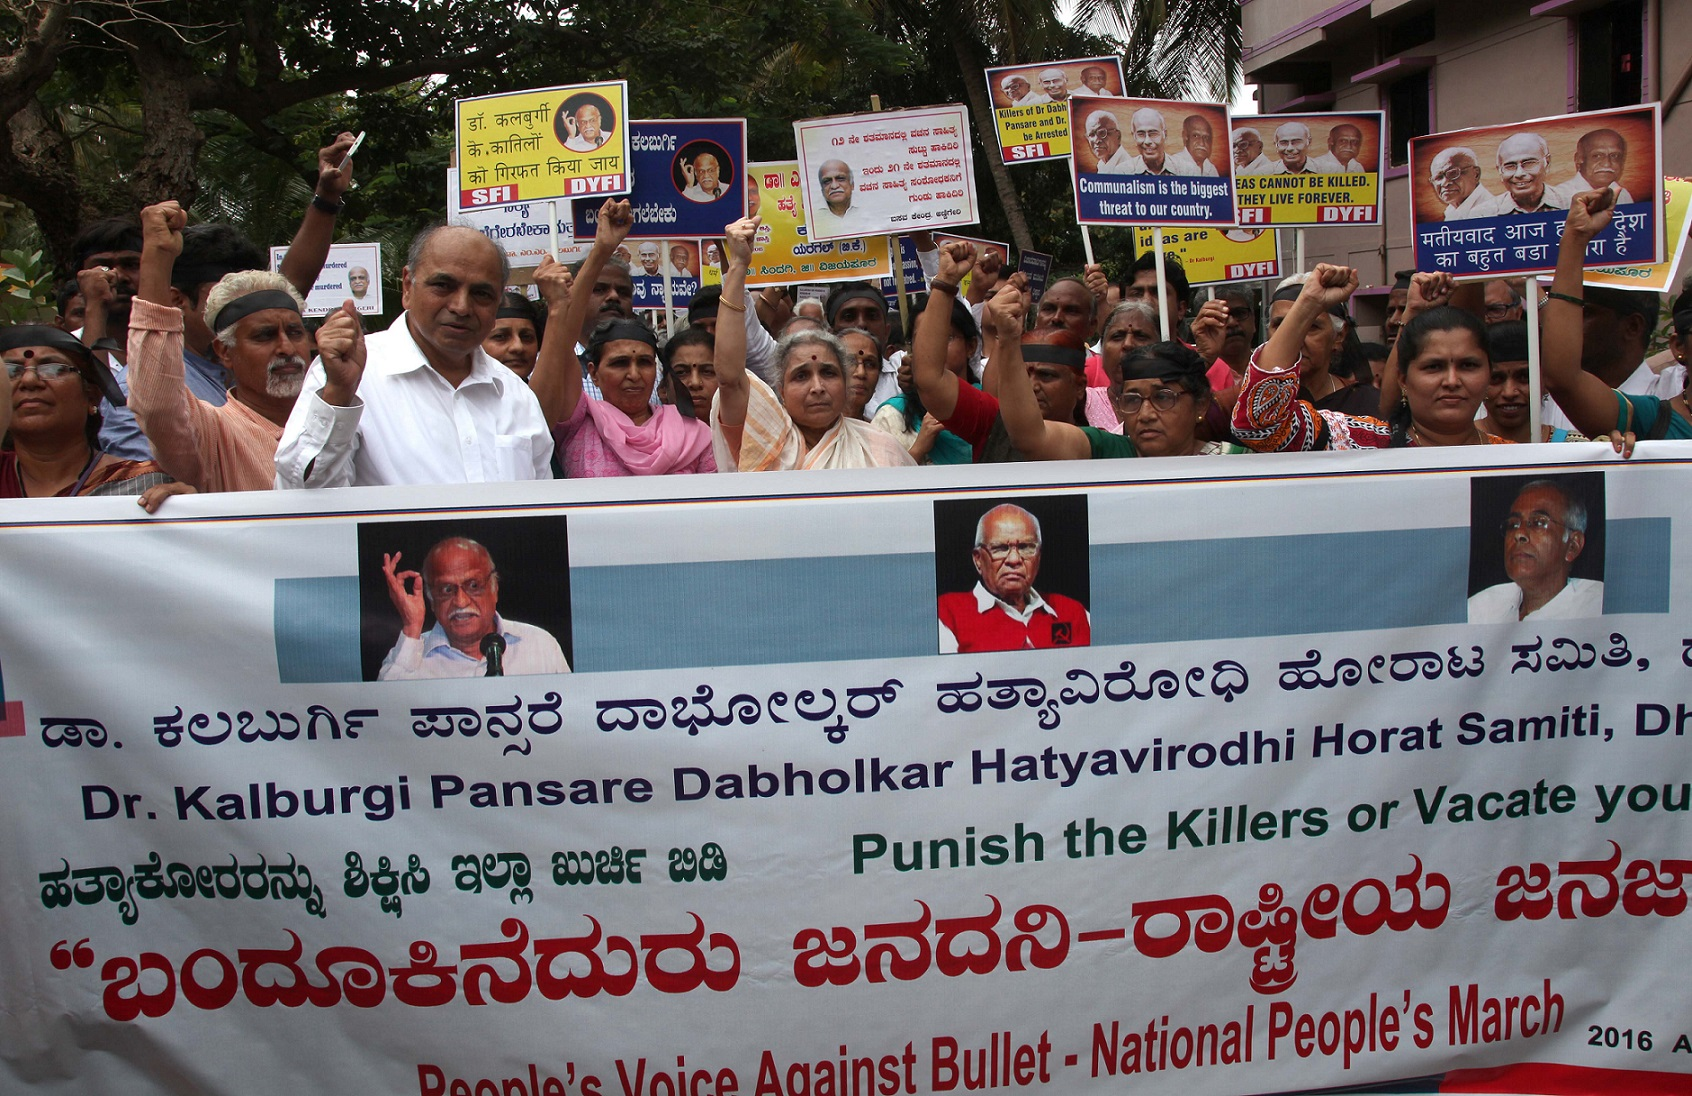 National Protest Marking One Year Since M.M. Kalburgi's Assassination